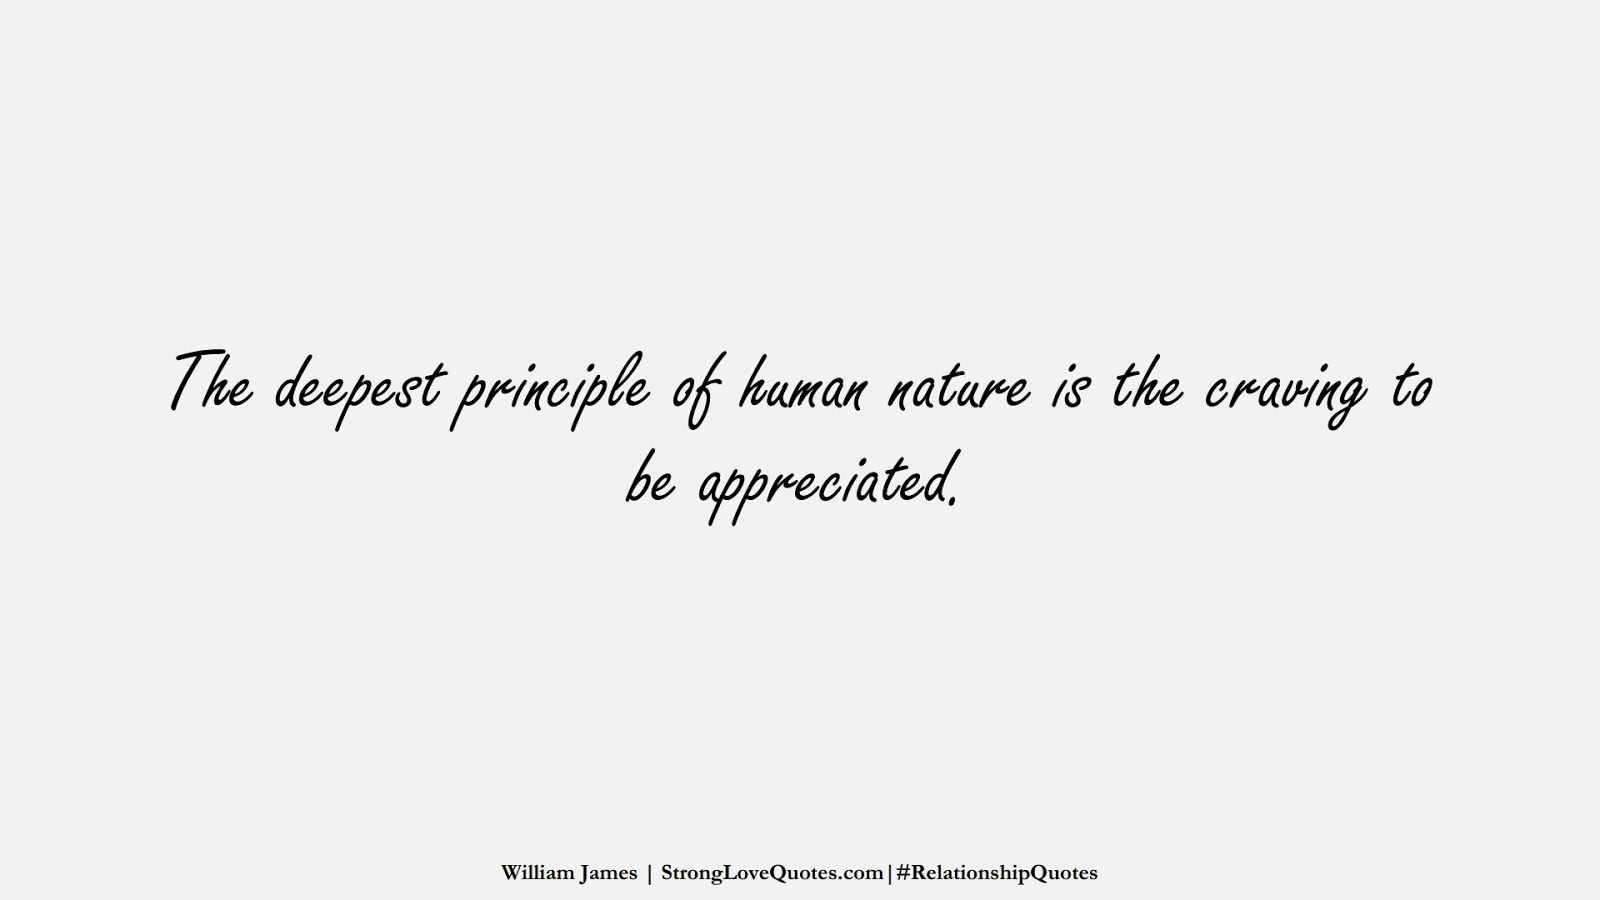 The deepest principle of human nature is the craving to be appreciated. (William James);  #RelationshipQuotes